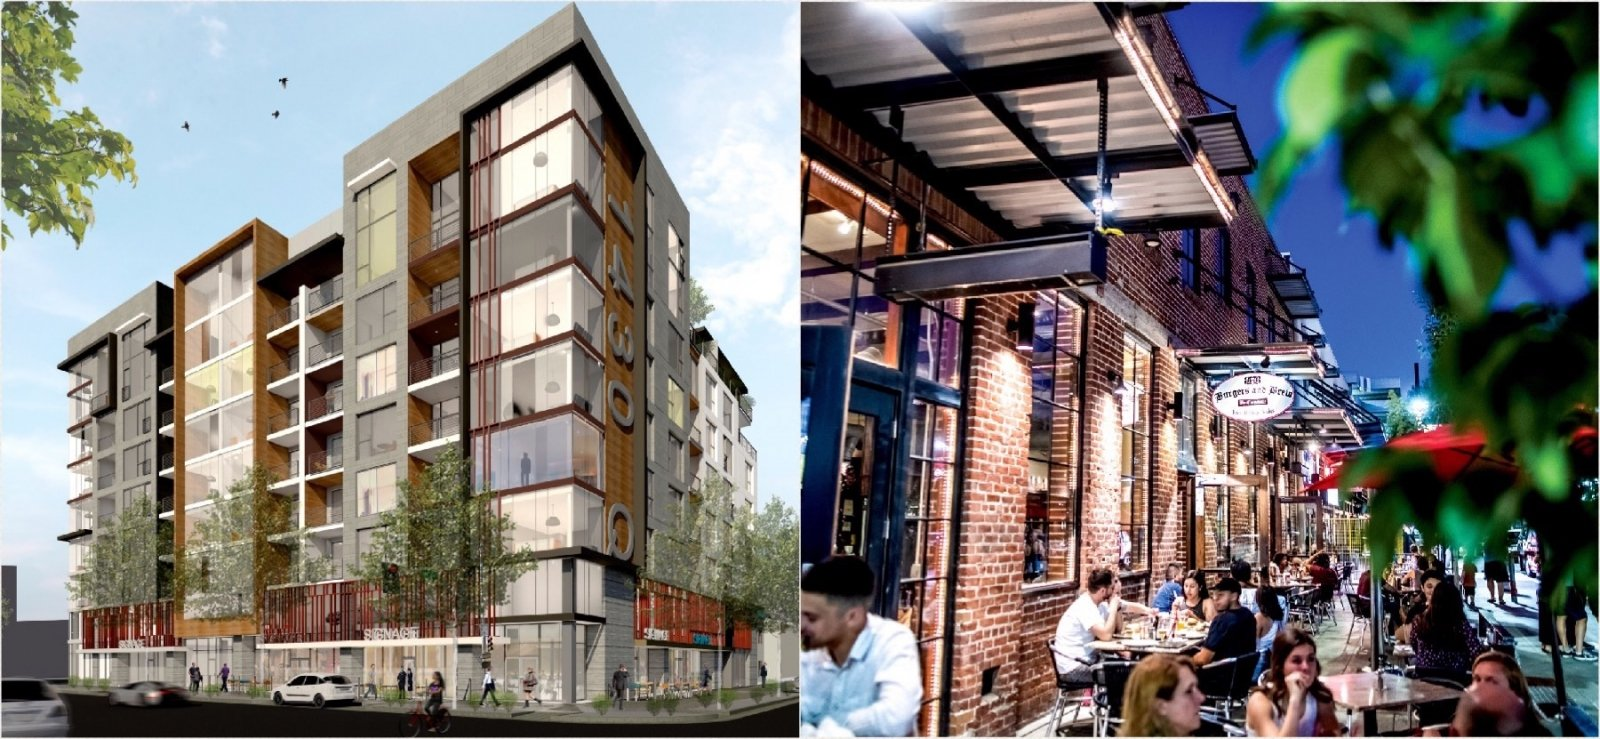 A few examples of placemaking projects by D&S Development: (top, from left) 1430 Q, an 8.5-story mixed-use complex, is rising across from Fremont Park; the company's development of the Perfection Bakery structure in the late aughts helped kick-start R Street's renaissance; (bottom, from left) 16 Powerhouse, the LEED Gold-certified mid-rise at 16th and P, sold for $32.5 million in March; in 2011, D&S worked with CFY to complete a thoughtful renovation of the historic Maydestone apartment building at 15th & J, adding 32 affordable housing units to the urban core (1430 Q courtesy of D&S Development; all other photos by Nicholas Wray)